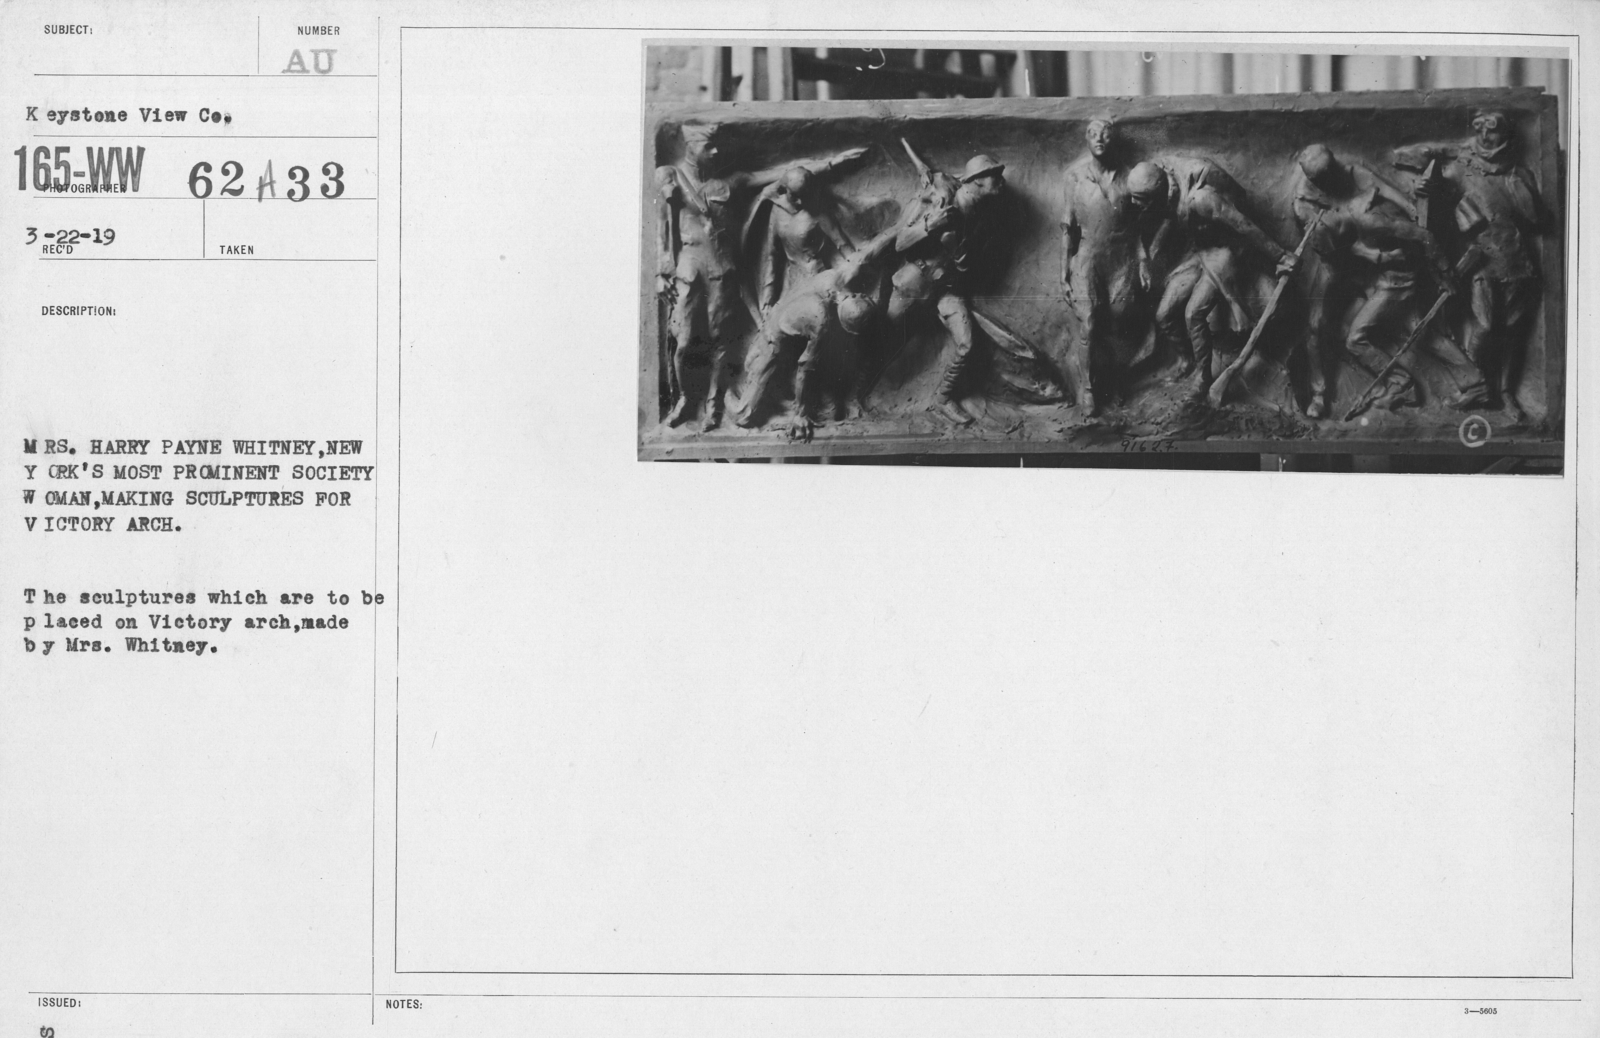 Artists - American Artworks (Wartime Cartoons) - Mrs. Harry Payne Whitney, new York's most prominent society woman, making sculptures for Victory Arch. The sculptures which are to be placed on Victory arch, made by Mrs. Whitney